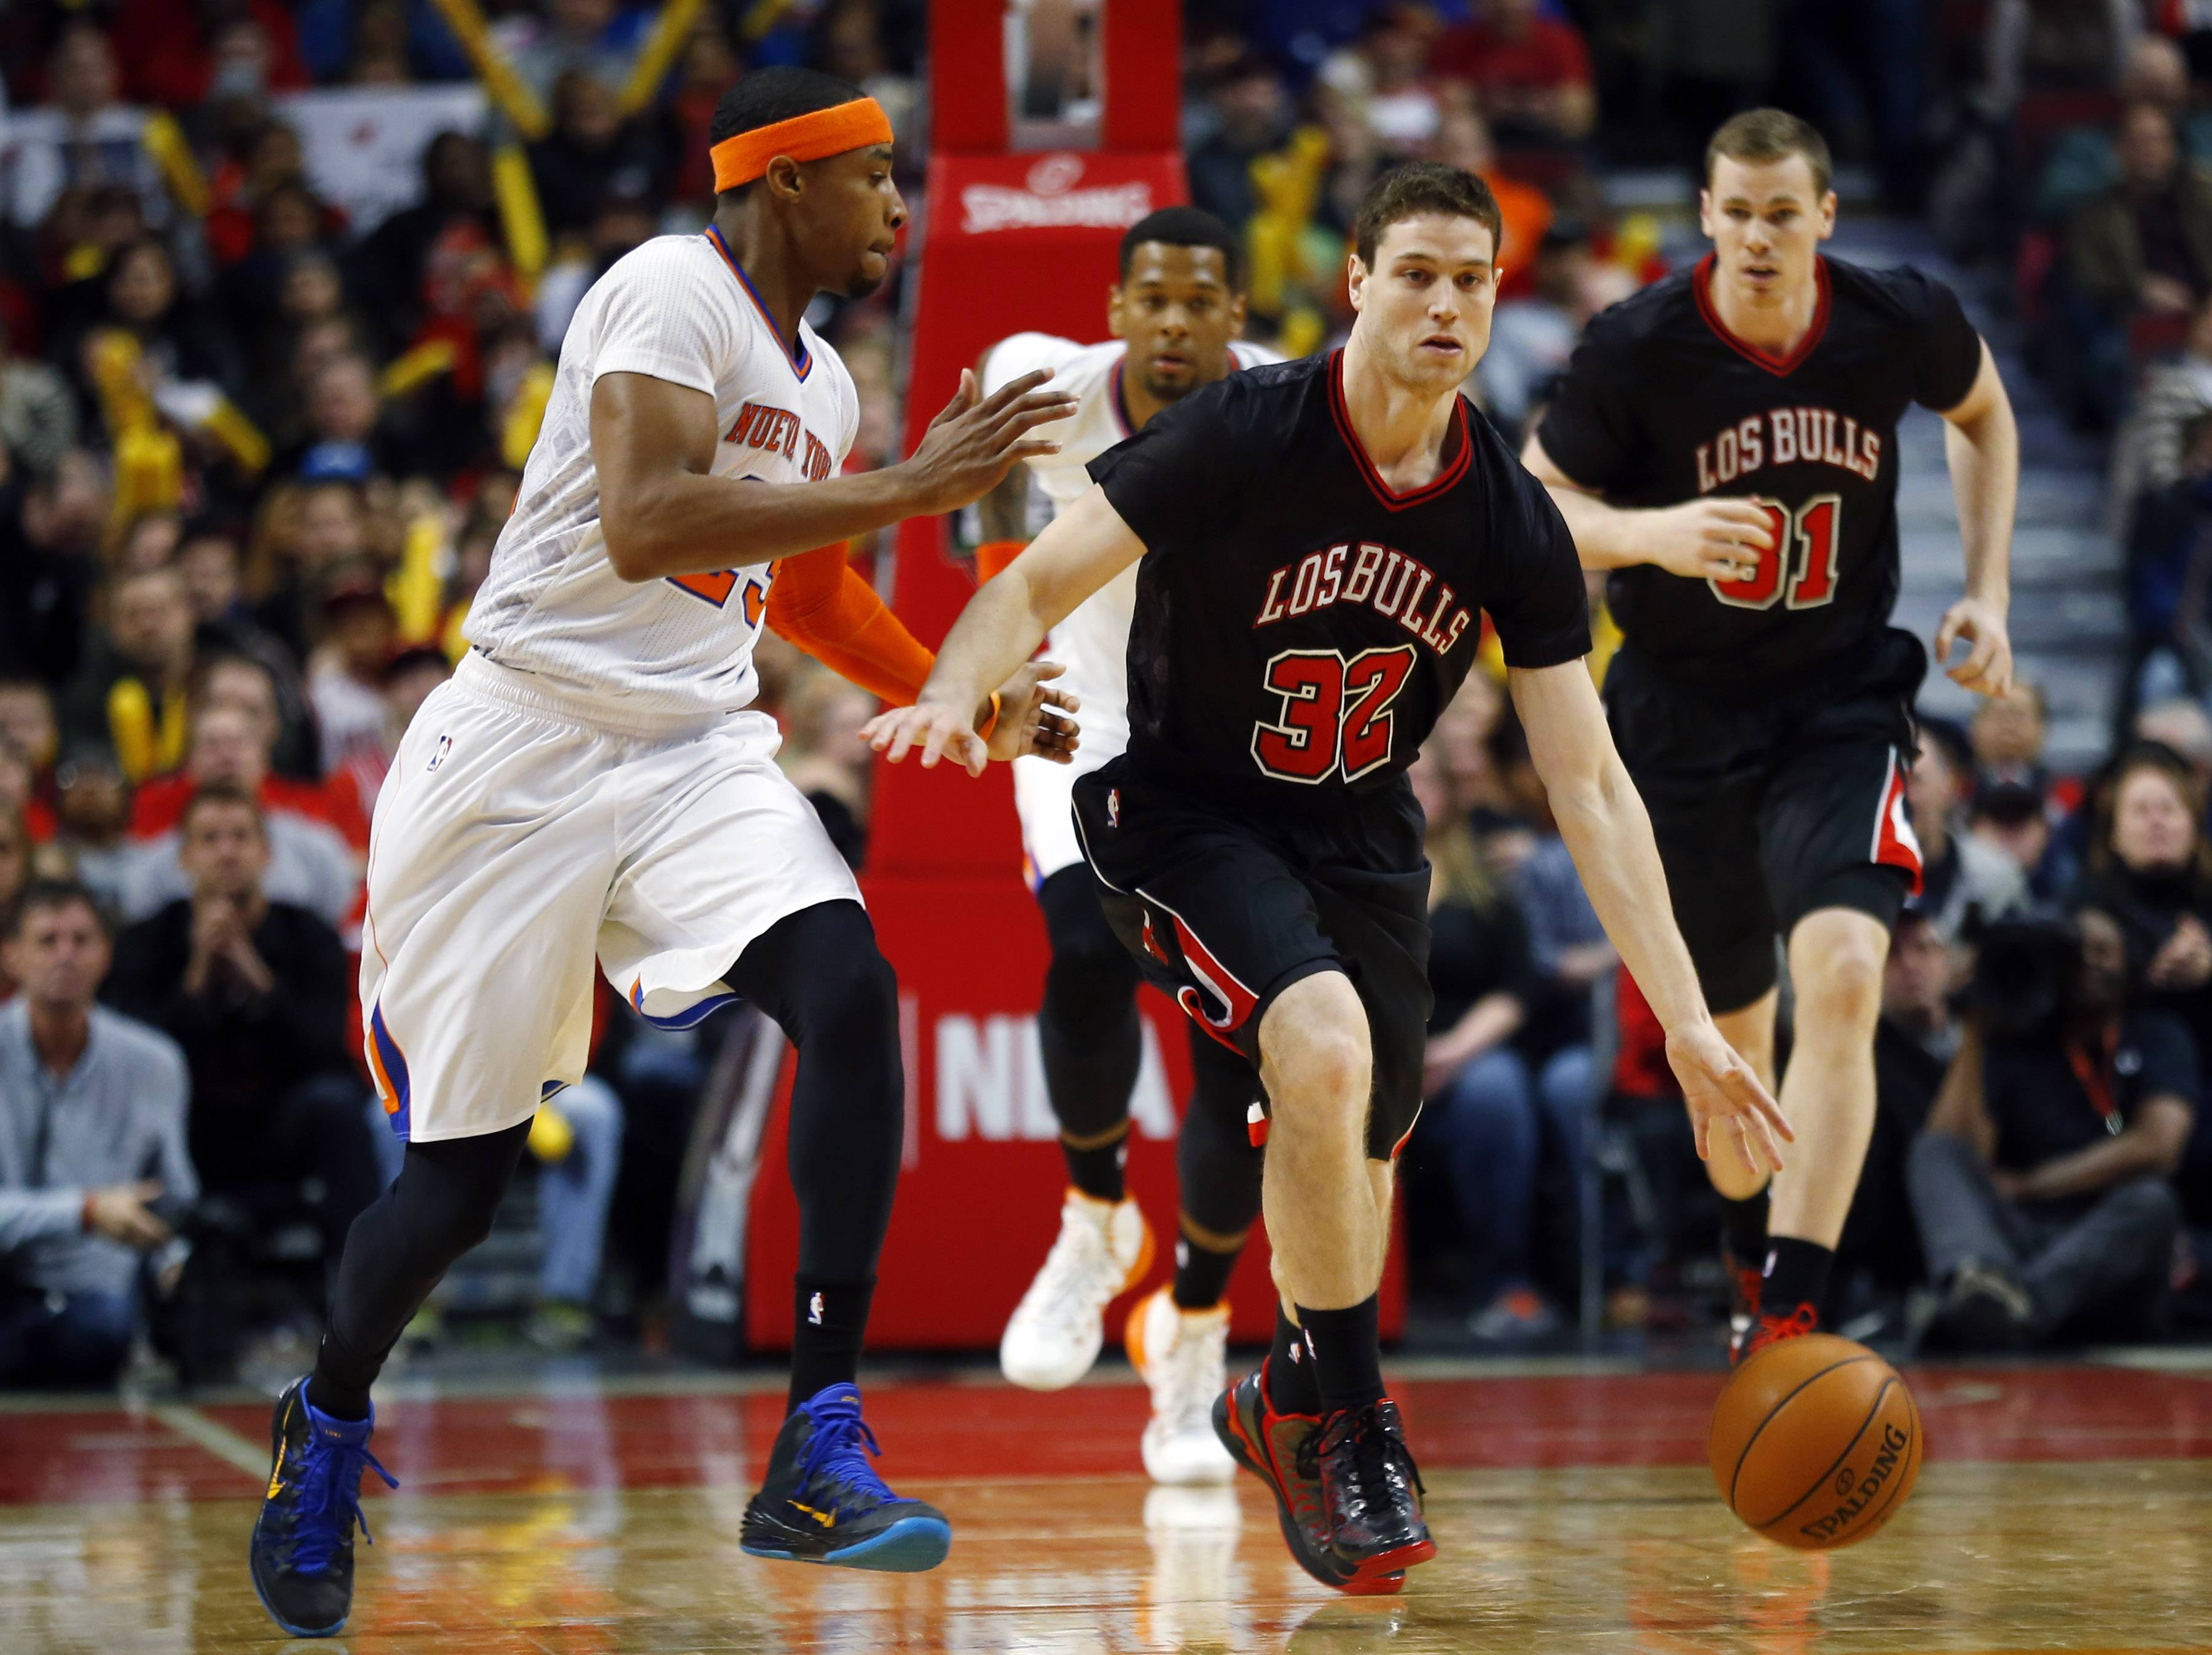 Newly signed Bulls guard Jimmer Fredette dribbles past New York Knicks guard Toure' Murry during the second half of an NBA basketball game on Sunday, March 2, 2014, in Chicago.